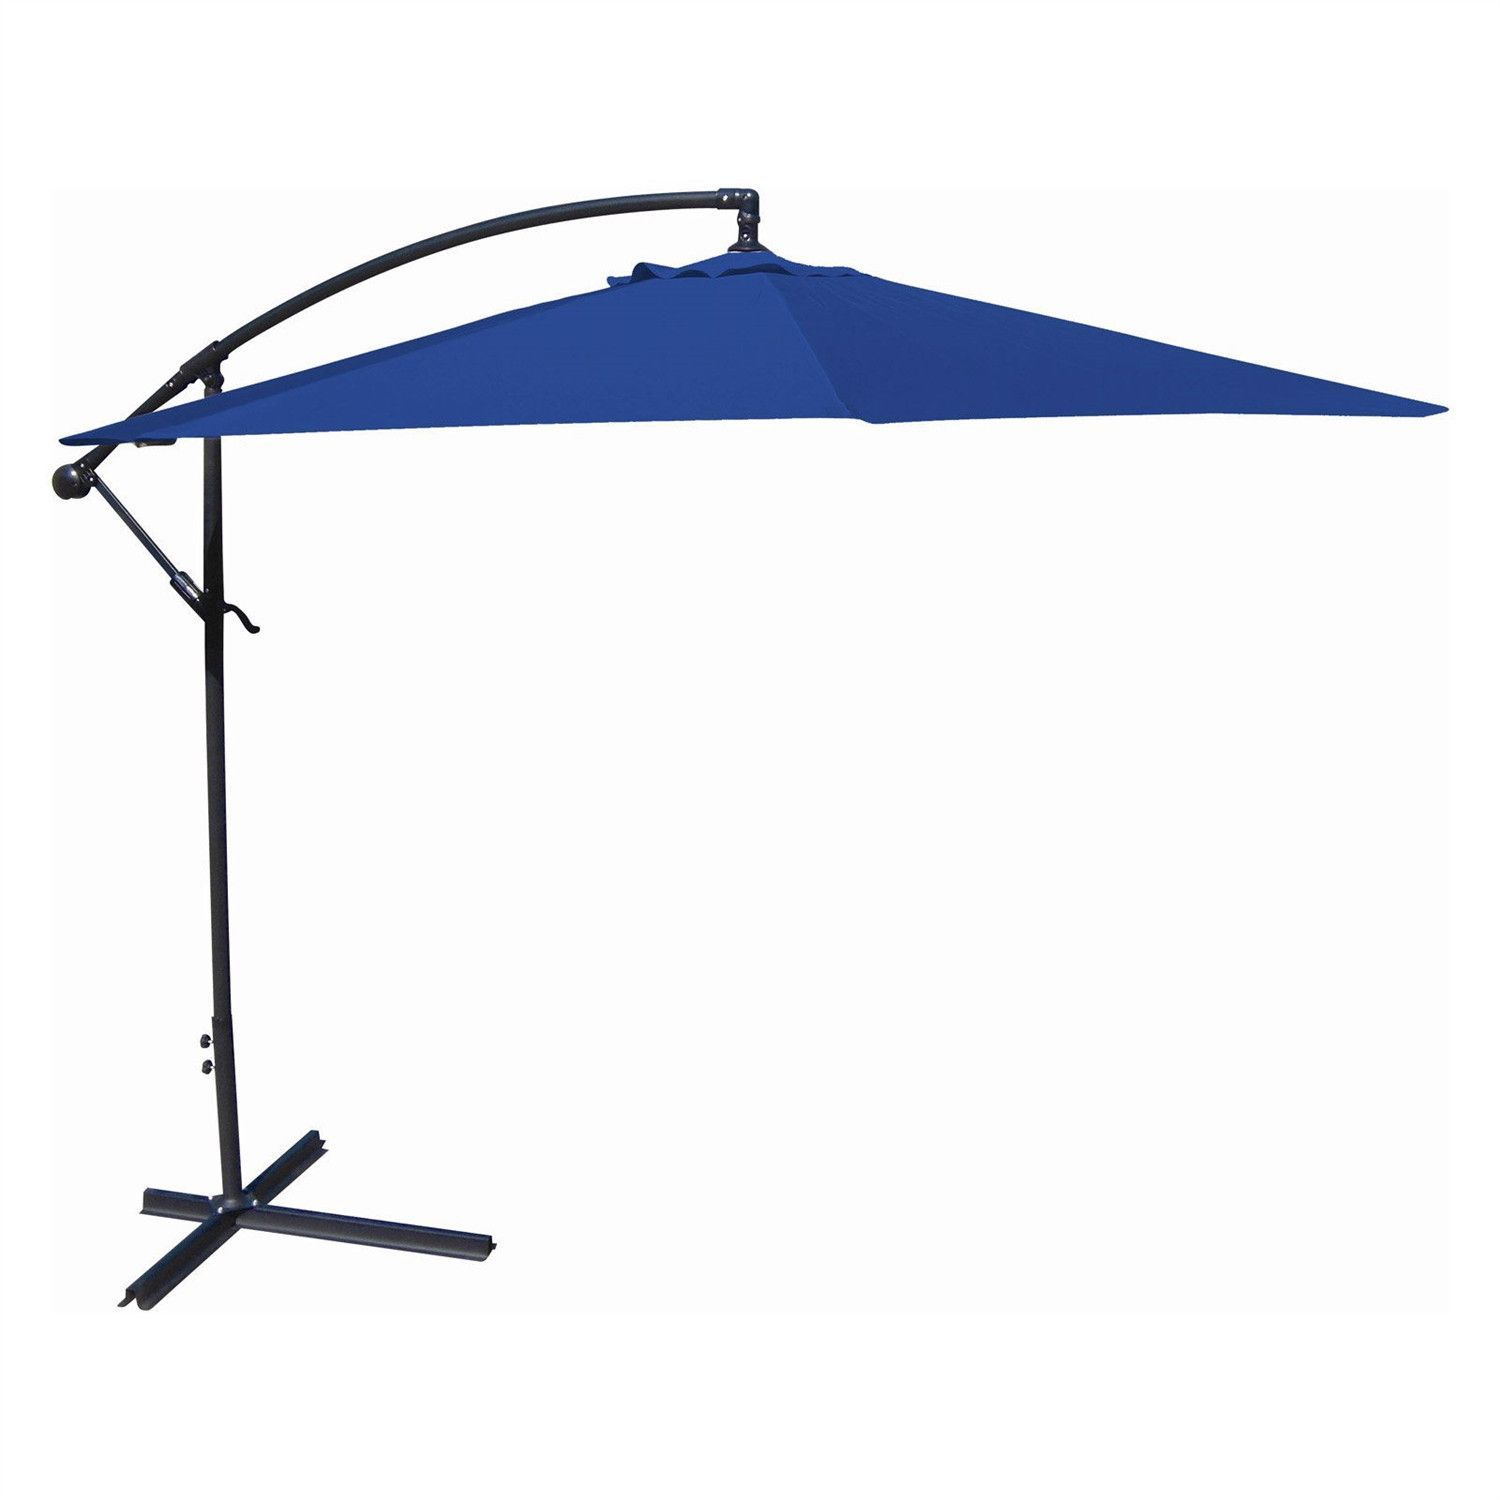 10 Ft Offset Cantilever Patio Umbrella With Royal Blue Canopy Shade